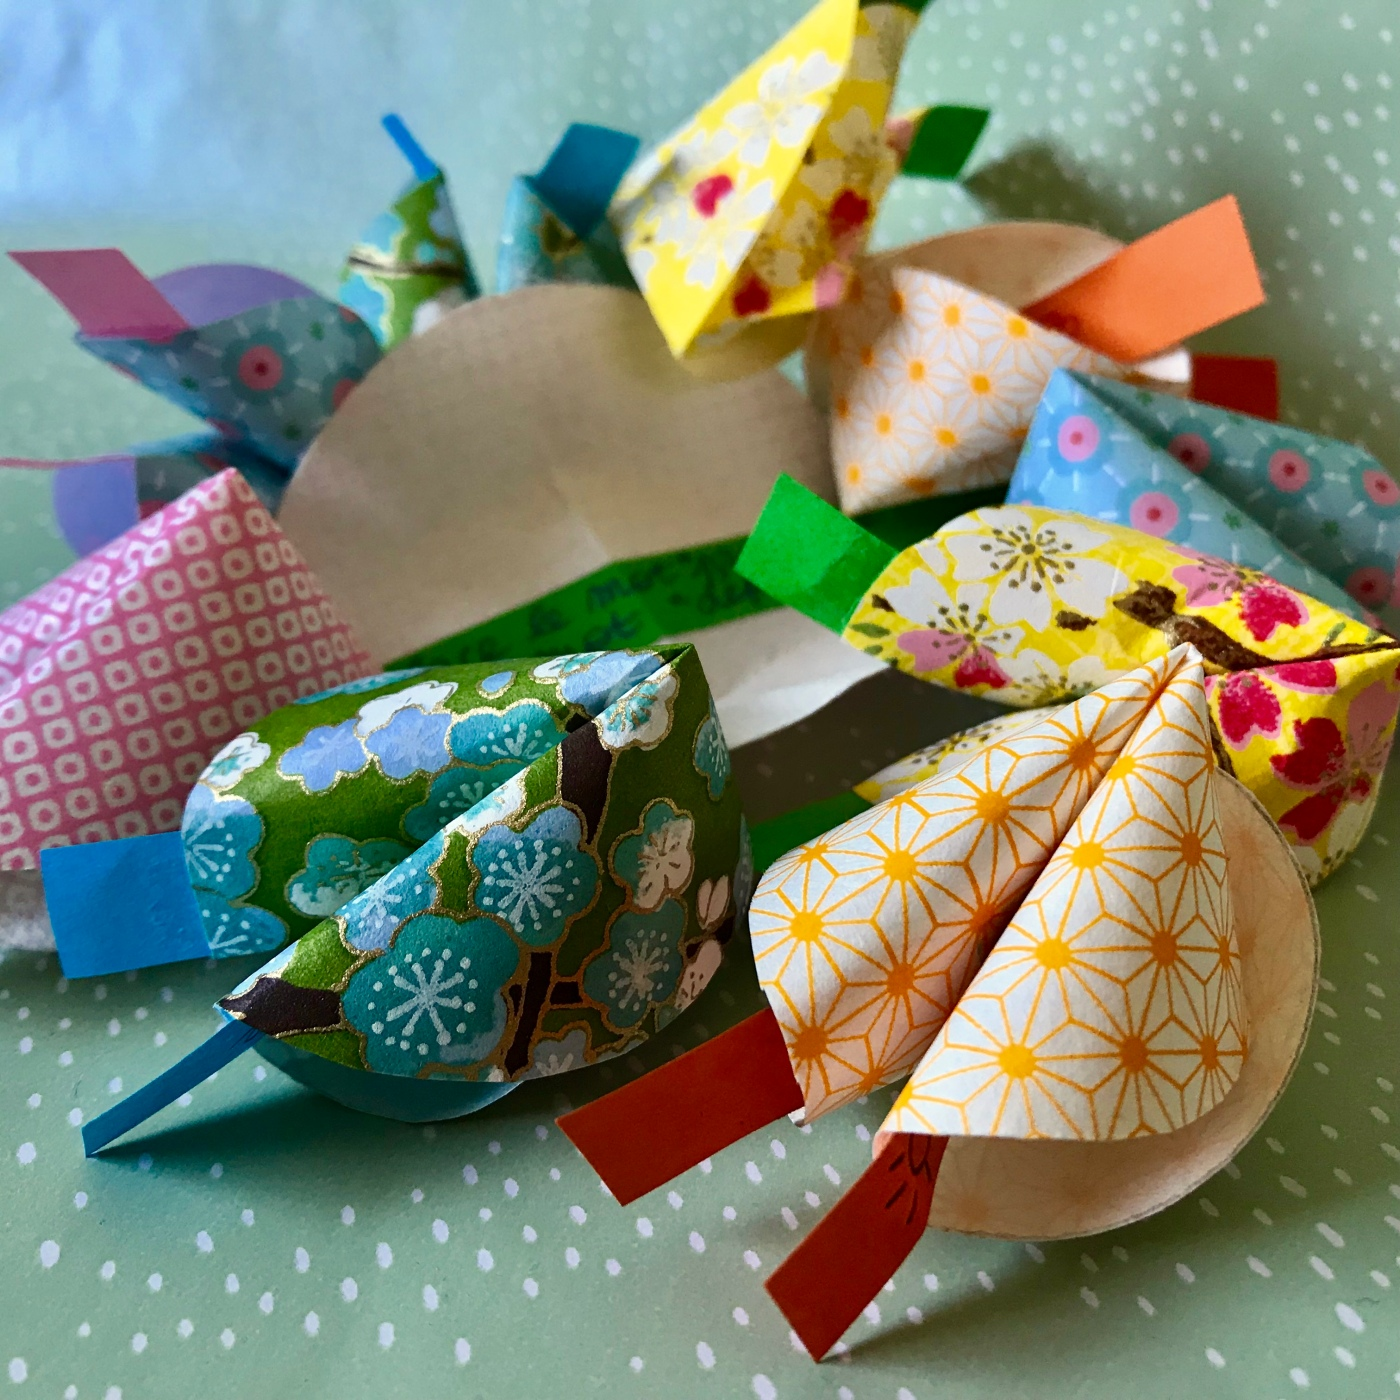 Biscuits de la fortune en papier - DIY - bricolage enfant - craft for kids - nouvel an chinois - origami - image à la une